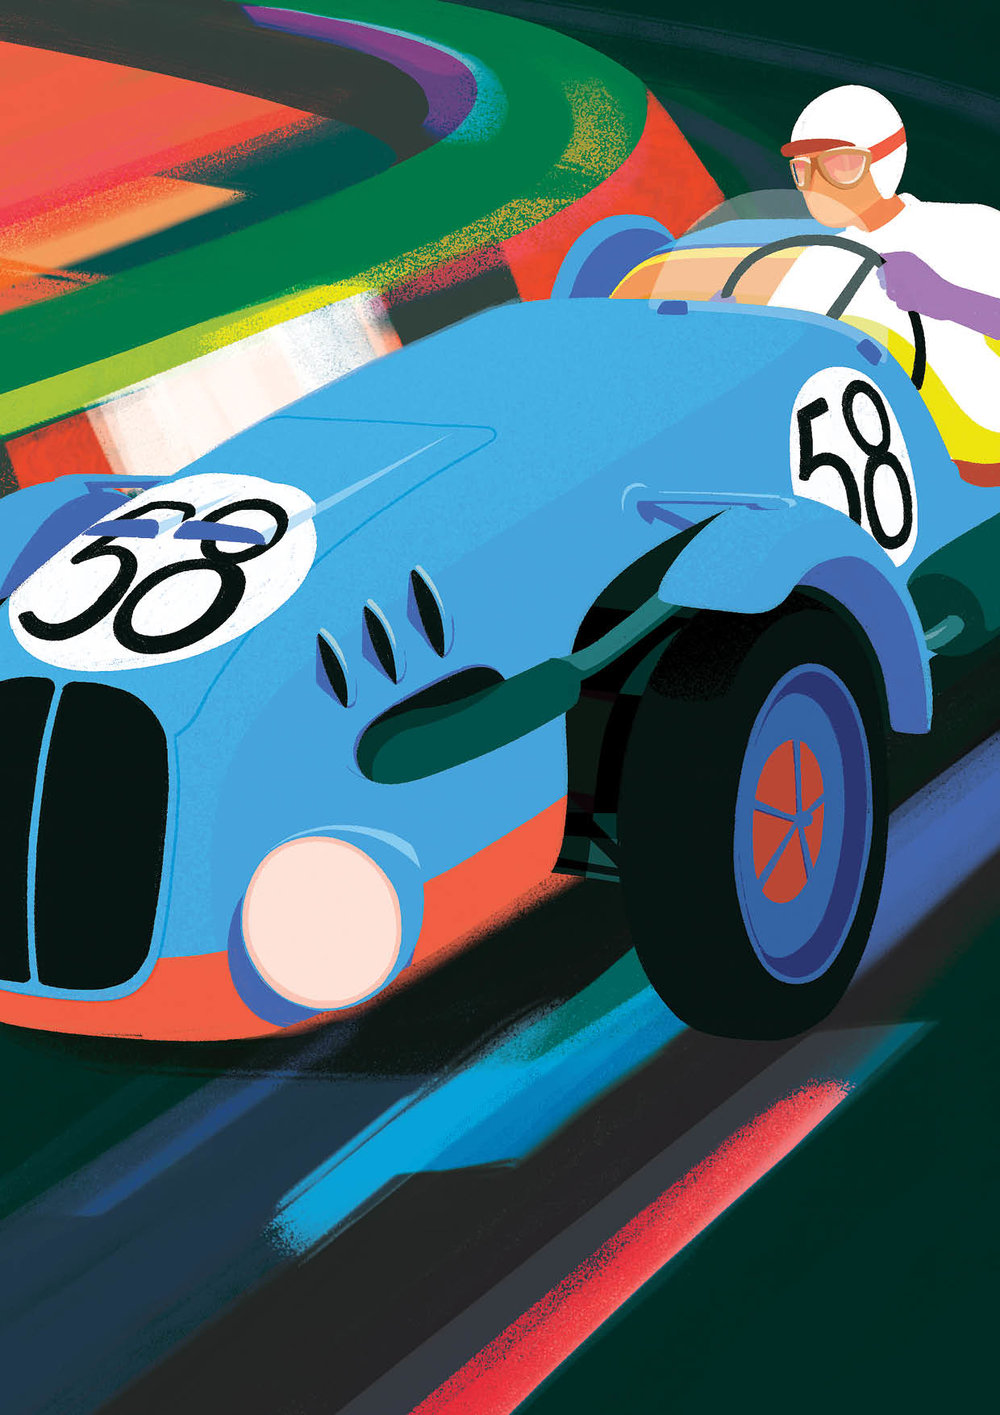 In June 1949, two Minor cars took part in the first post-war 24 Hours of Le Mans race. The model piloted by driver-duo Krattner and Sutnar was assigned the number 58, and acquired a blue stripe to indicate its Czech origins.